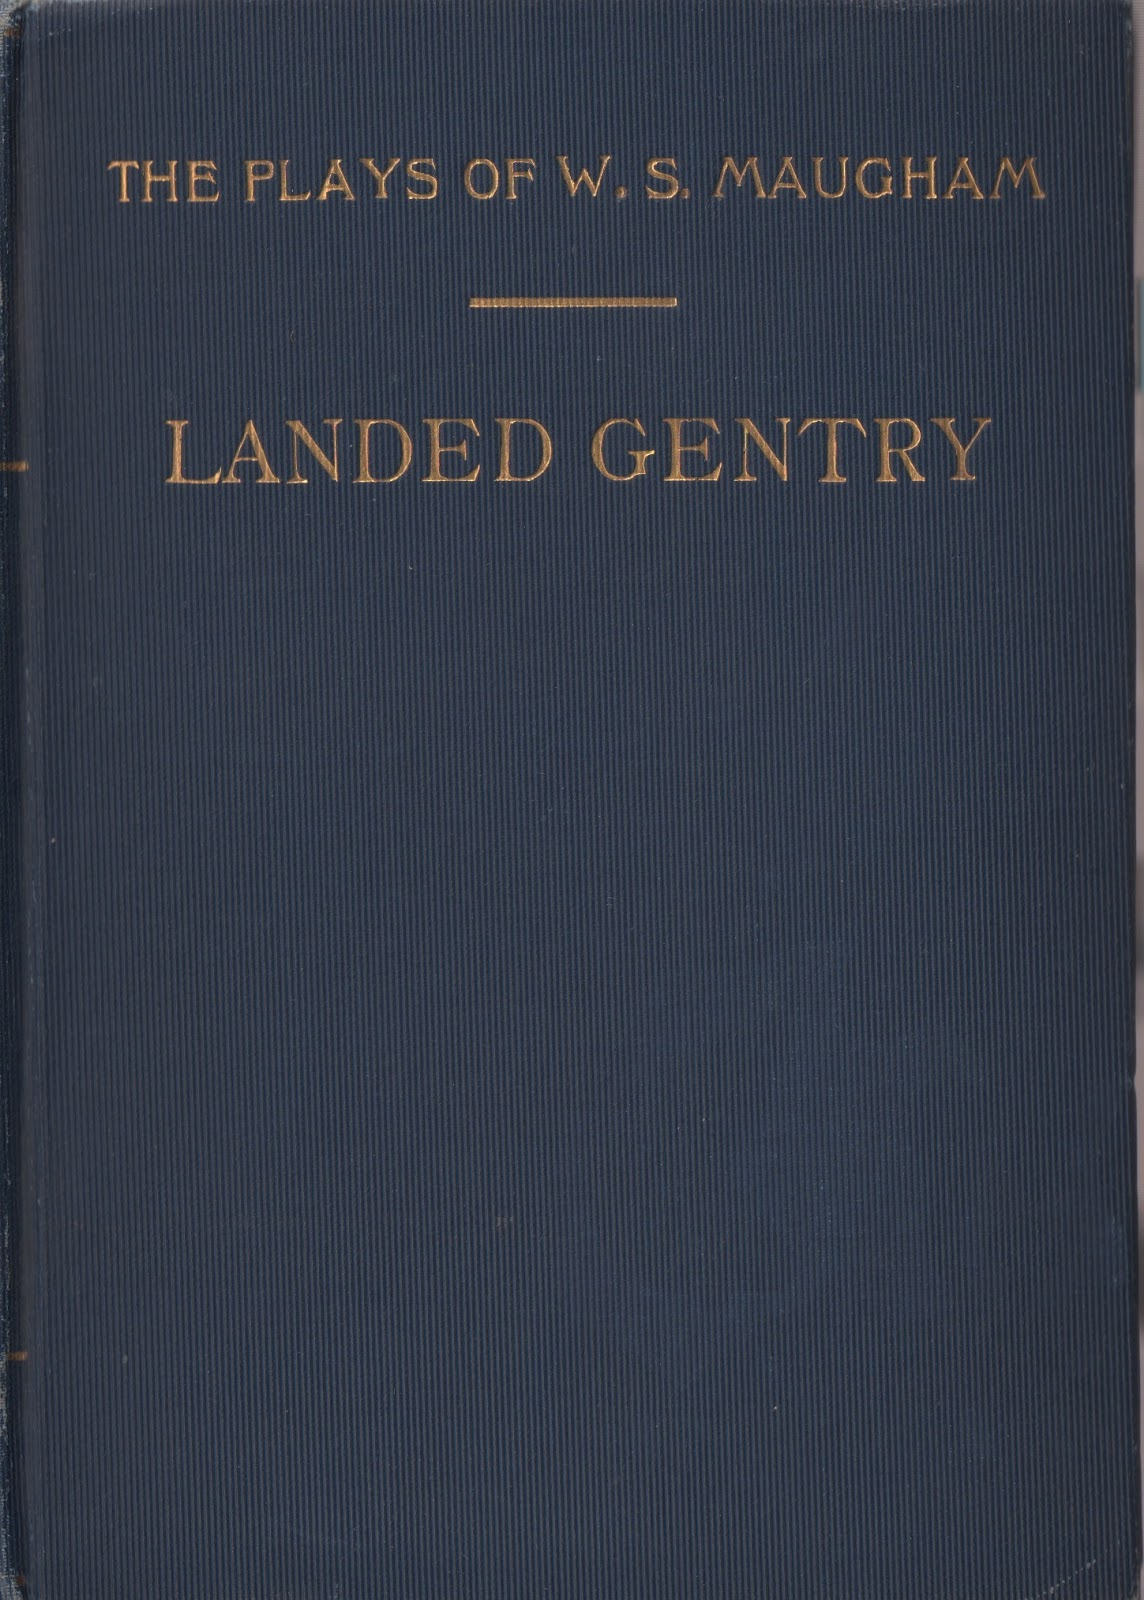 cover of Landed Gentry by W. Somerset Maugham